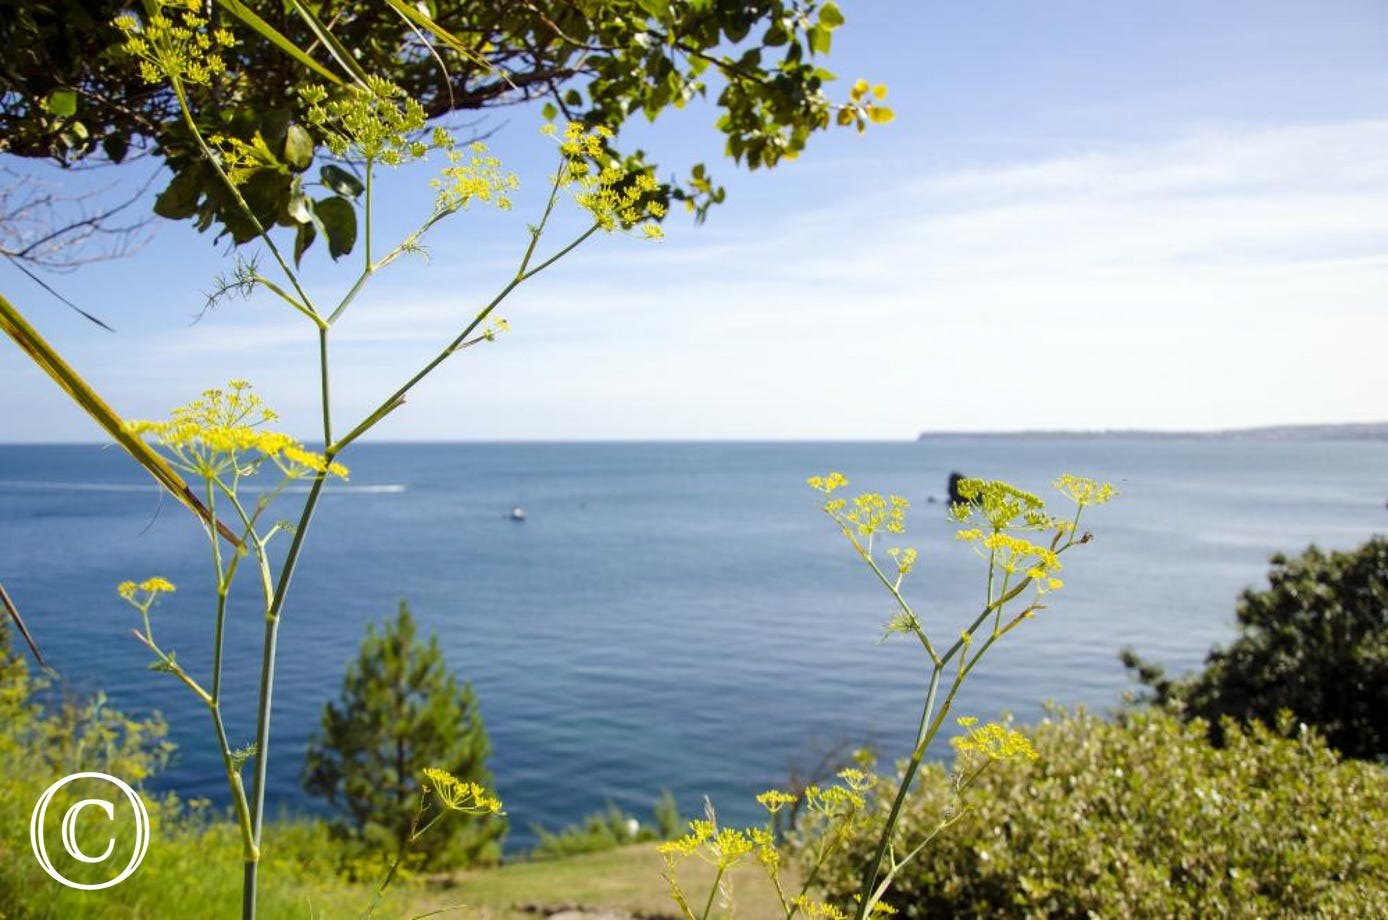 Meadfoot Beach Apartment, Torquay - View across Torbay